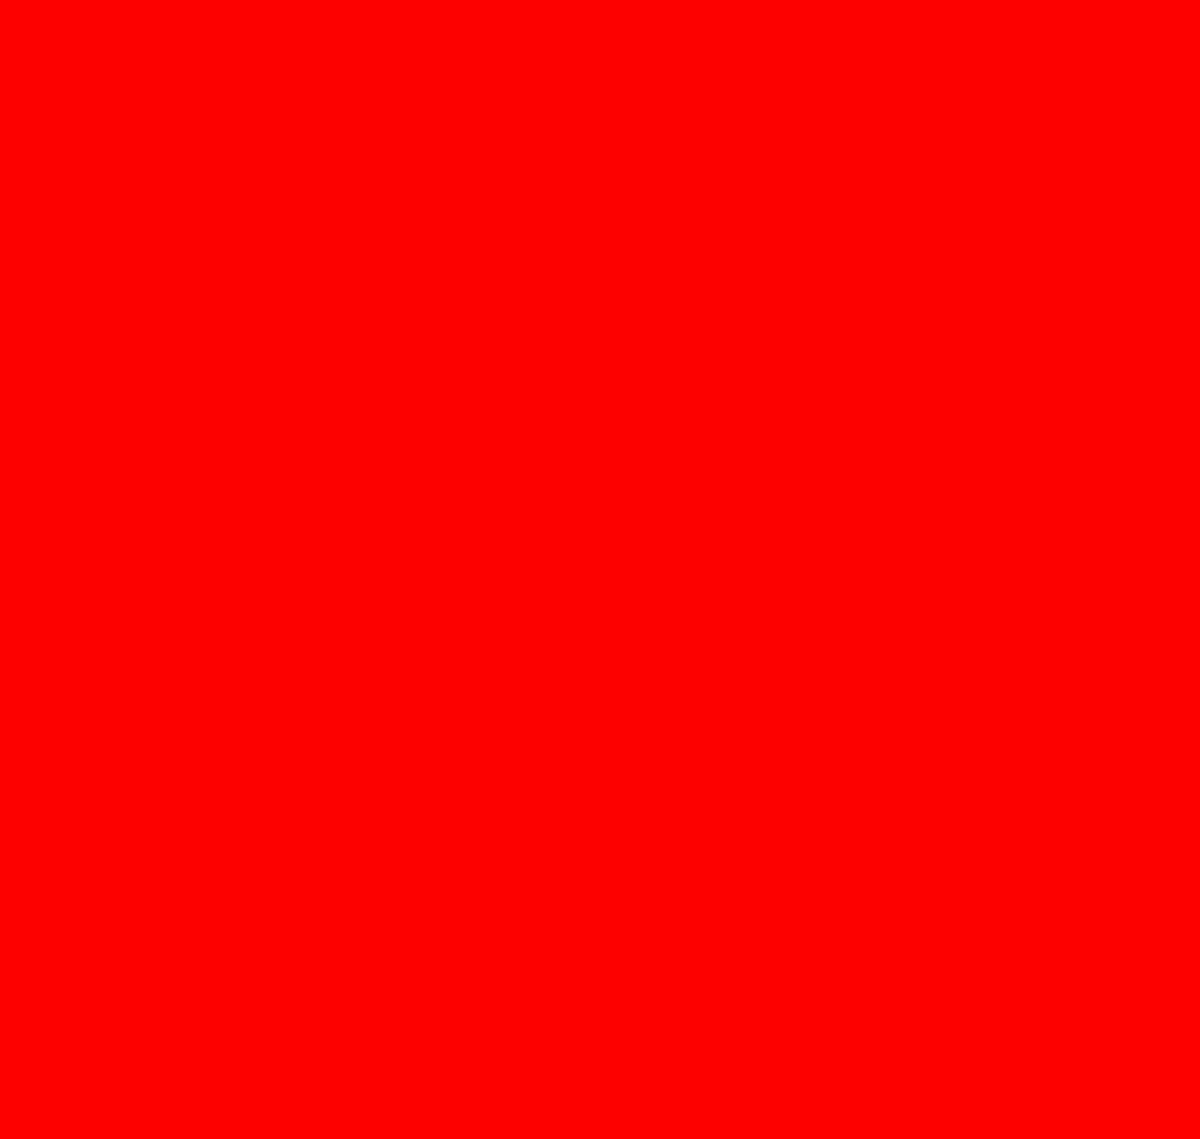 North London is RED 赤